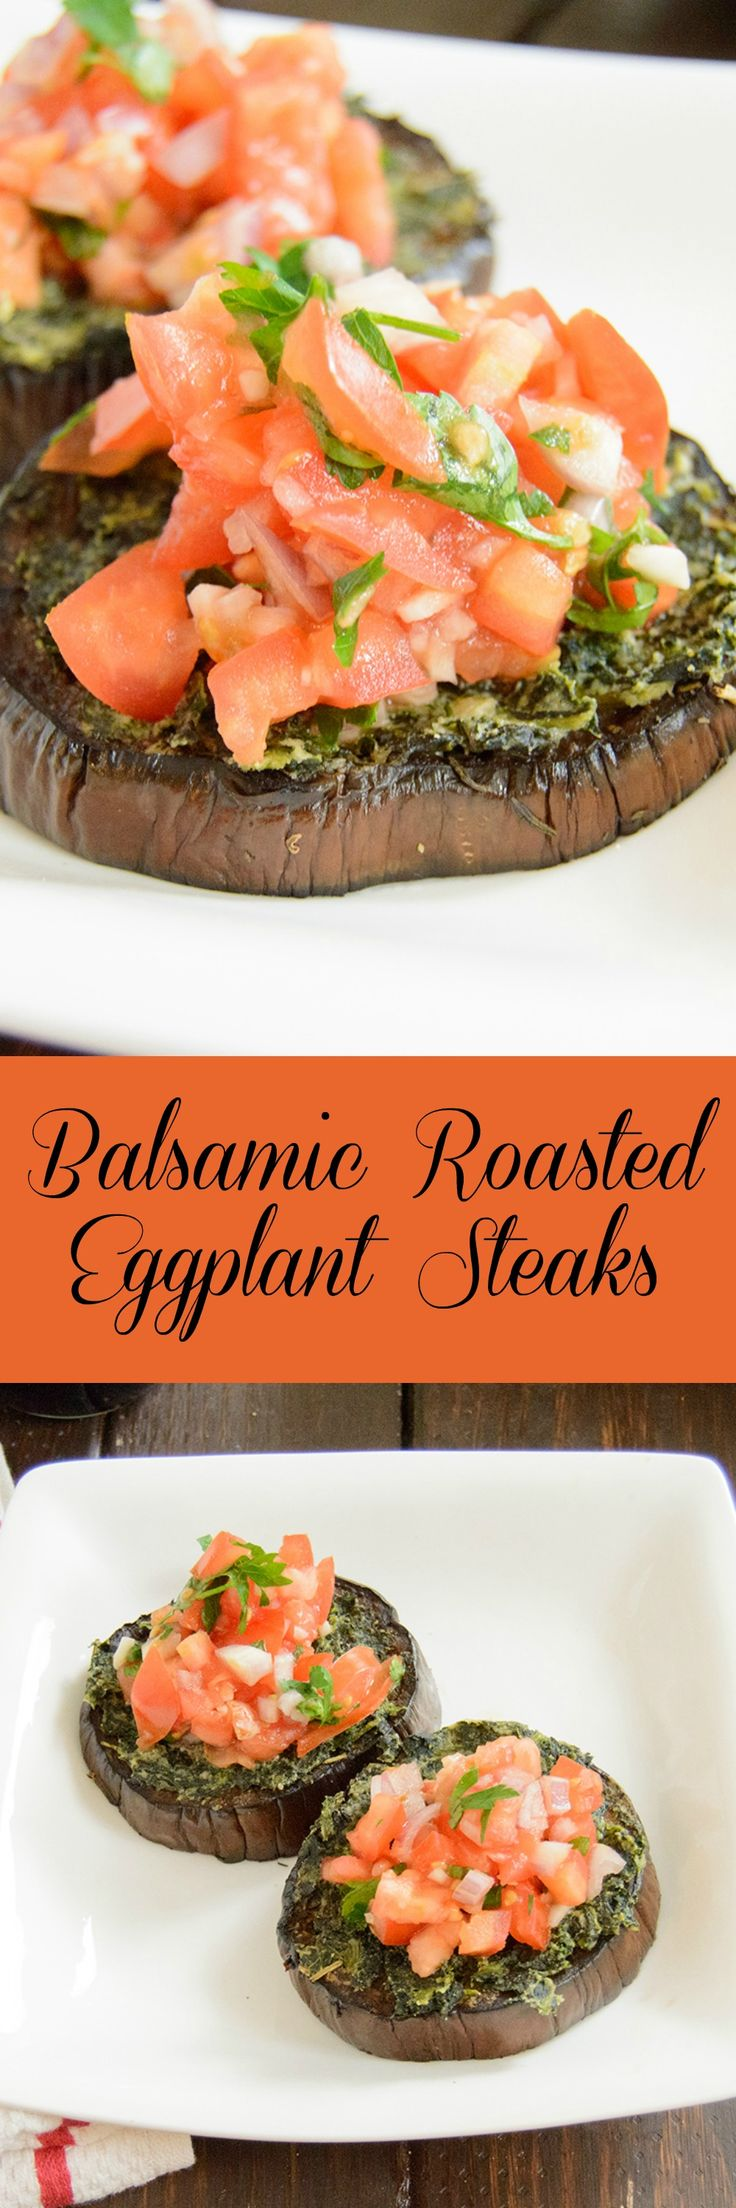 """Healthy Balsamic Eggplant """"Steaks"""" - need dinner inspiration?This is the perfect vegan, gluten free dinner and is even better the next day!"""